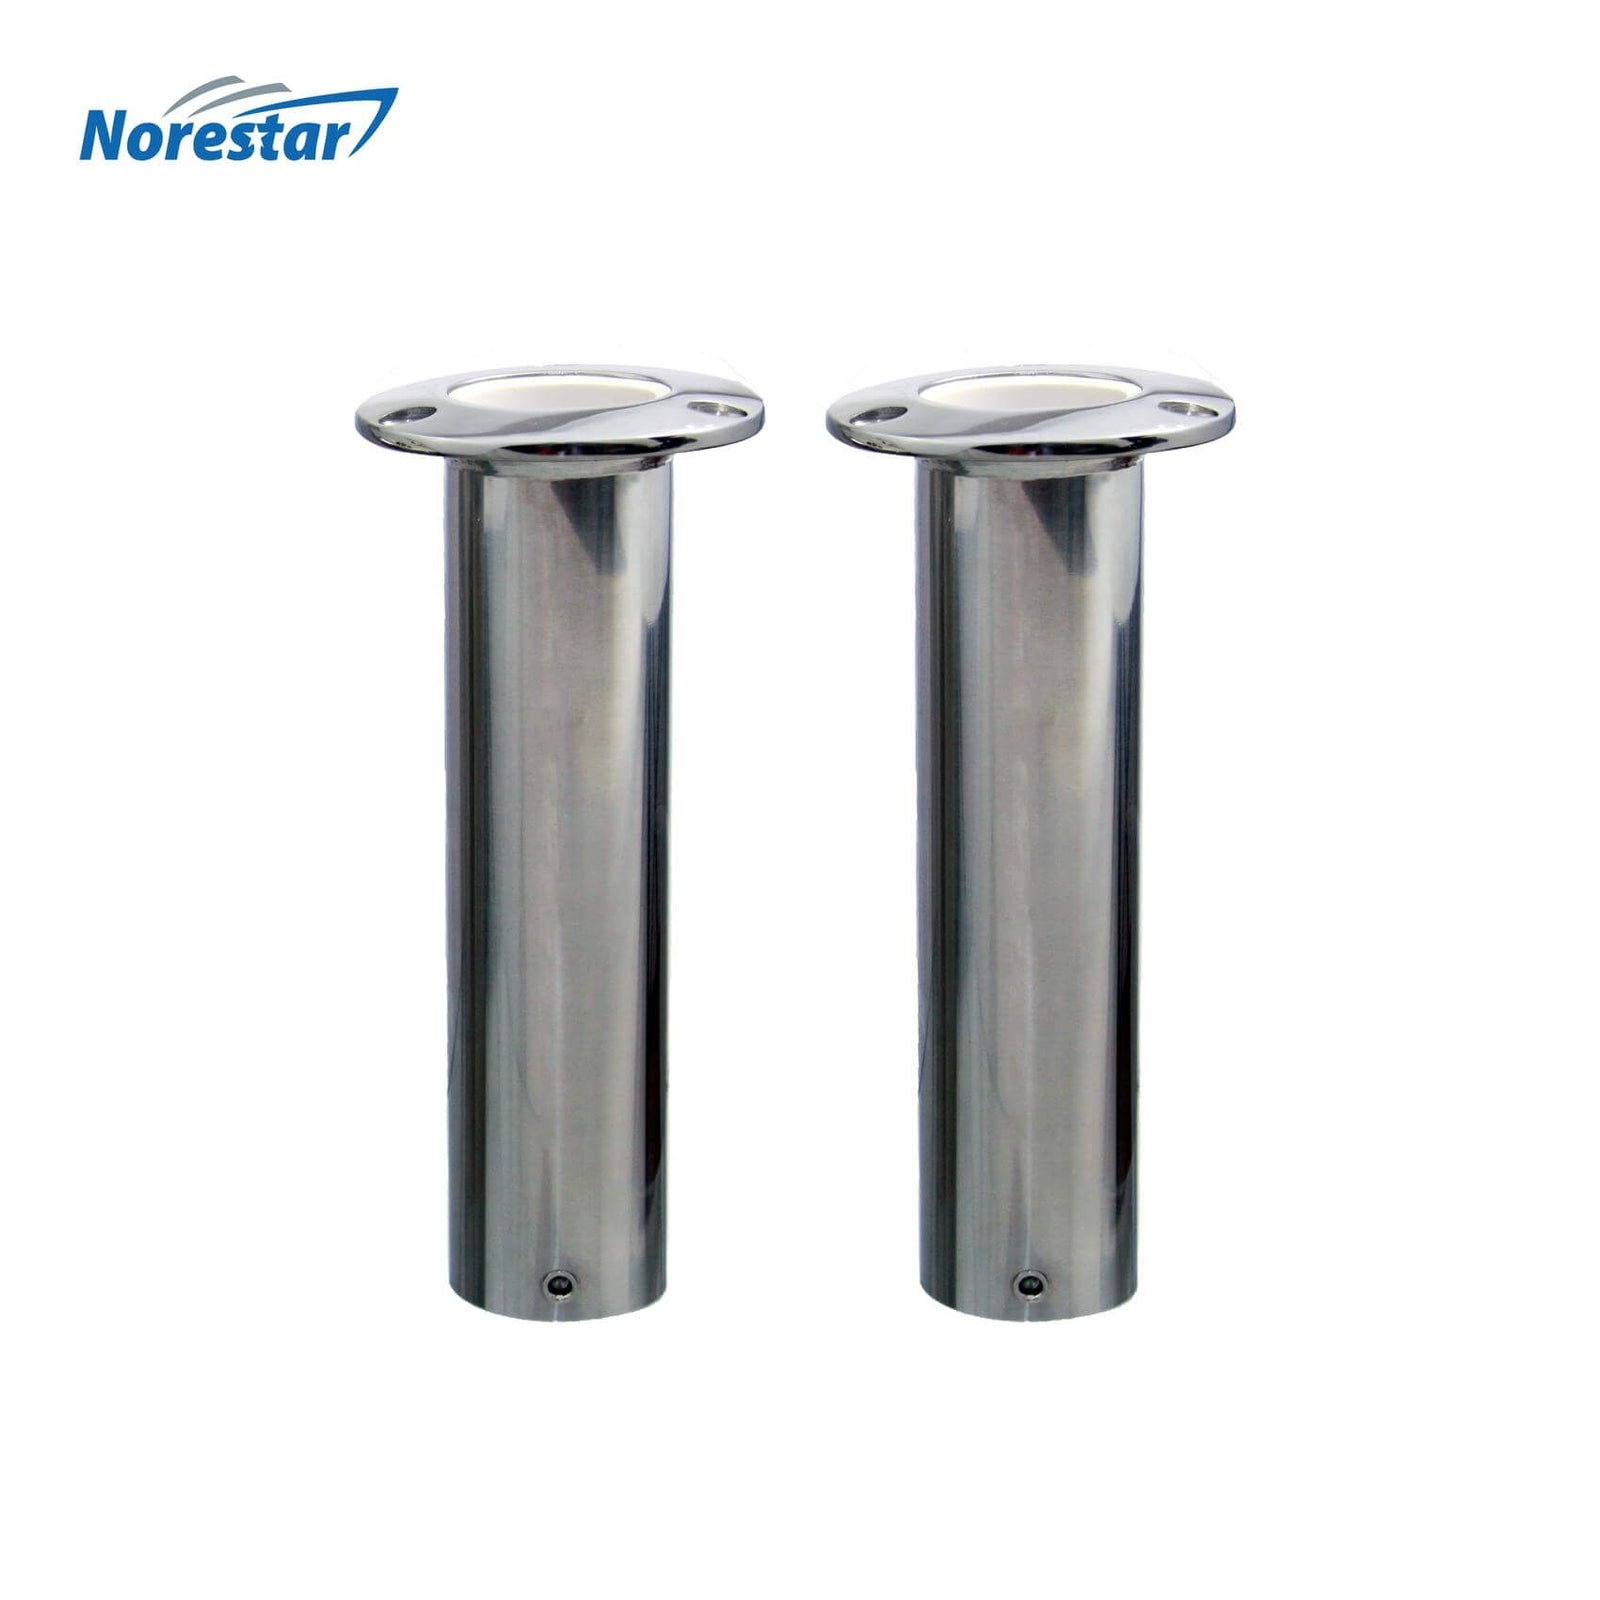 Two Flush Mounted Stainless Steel Rod Holders, Straight